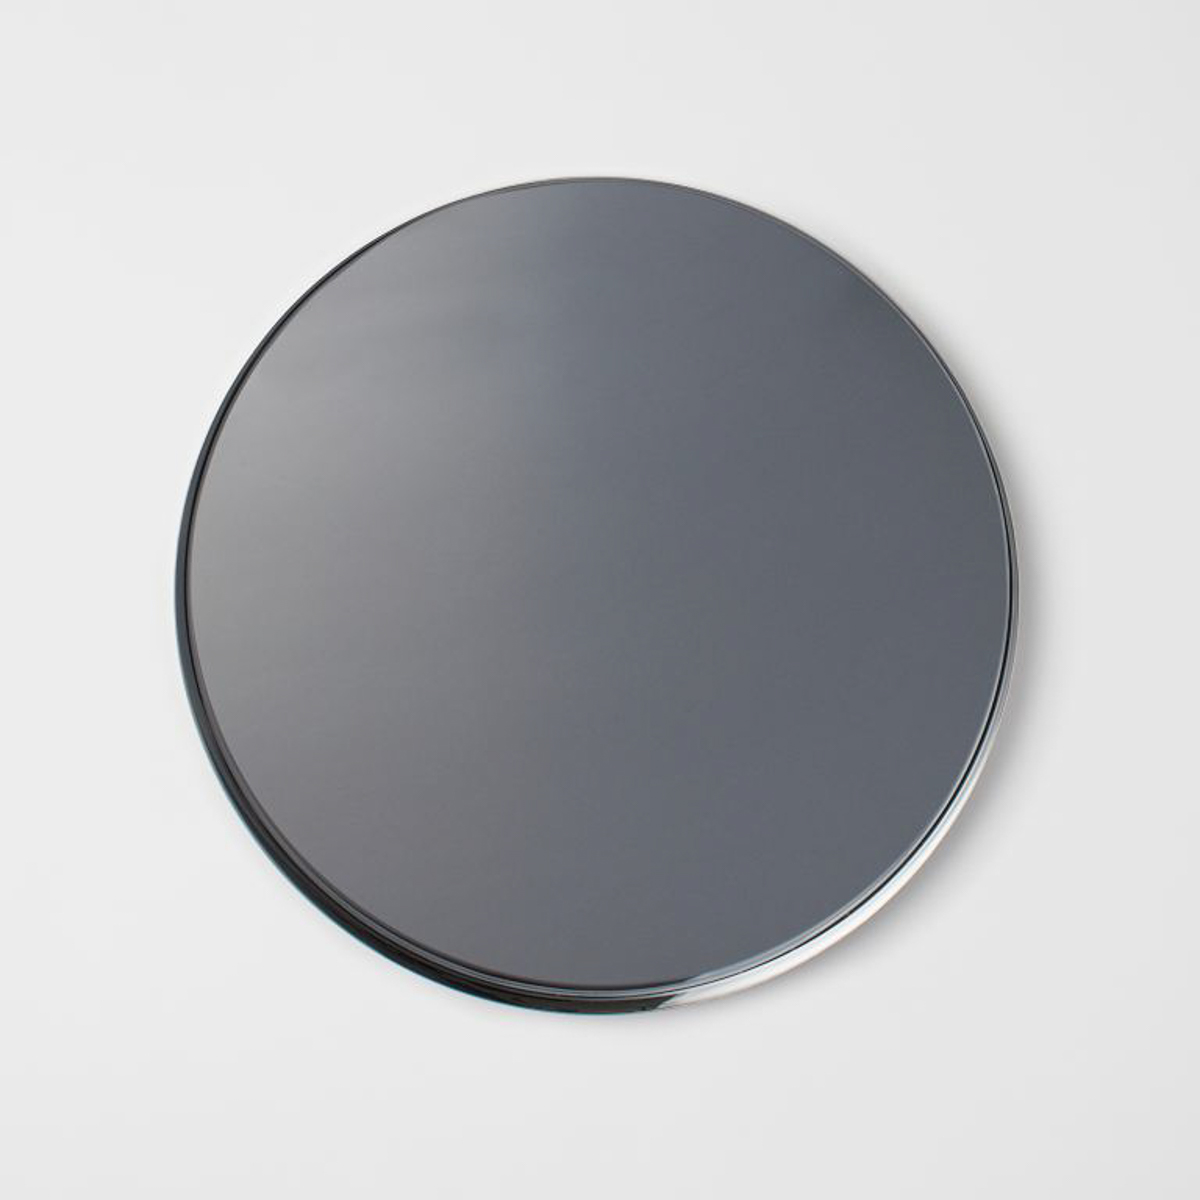 hm-mirror-glass-tray-lifestyle-man-for-himself